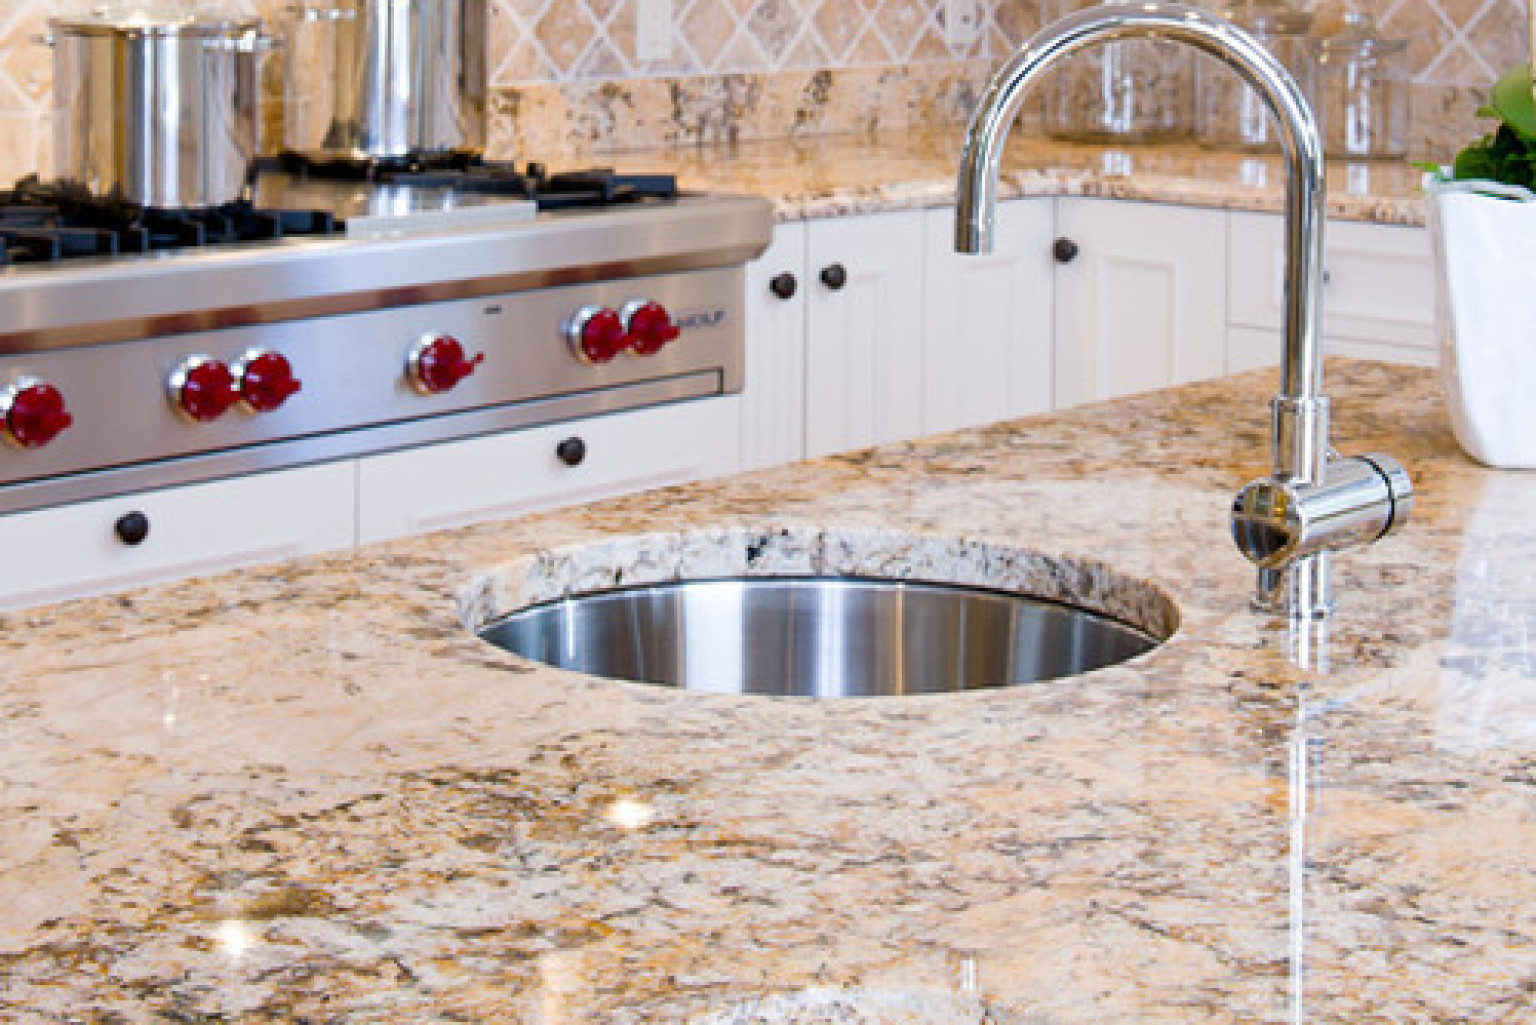 kitchen countertops buying guide n best kitchen countertop material Kitchen Countertops Buying Guide The Ins And Outs Of The Best Options On The Market PHOTOS HuffPost